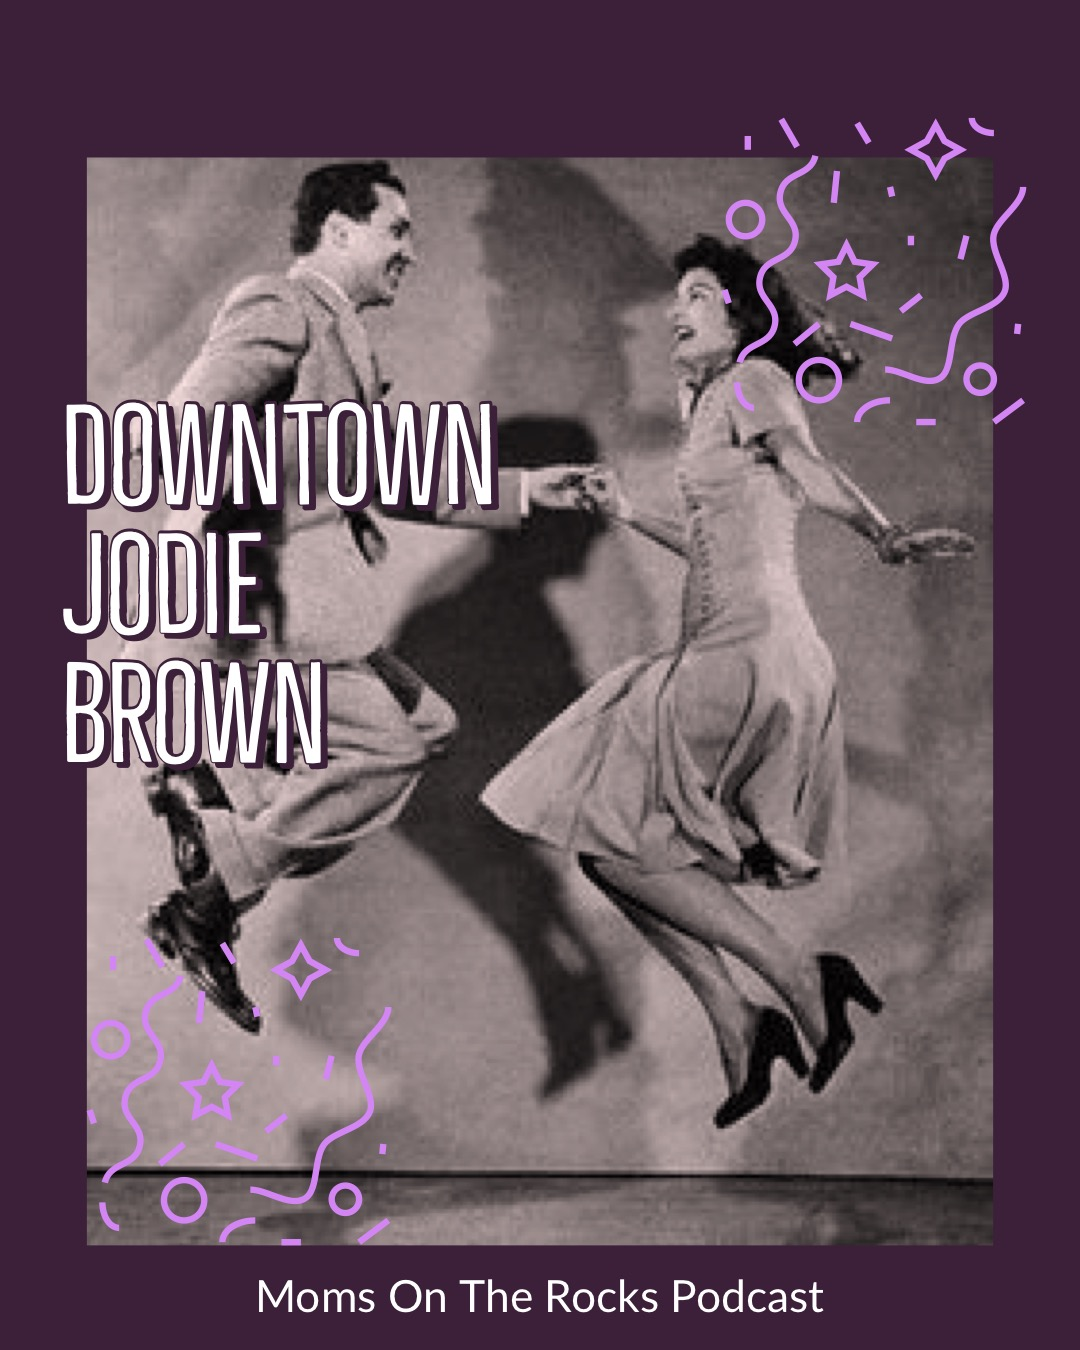 Downtown jodie brown - On this episode, Jodie and Carrie discuss what was on their mixtapes- and who is an Elton John Purist. Of course, can't leave out Dirty Dancing the movie. The ladies talk Blind Gossip items of celebrities- it has become the daily horoscope. So pour a glass, welcome to the sleepover. And as always, don't apologize. You're a badass.